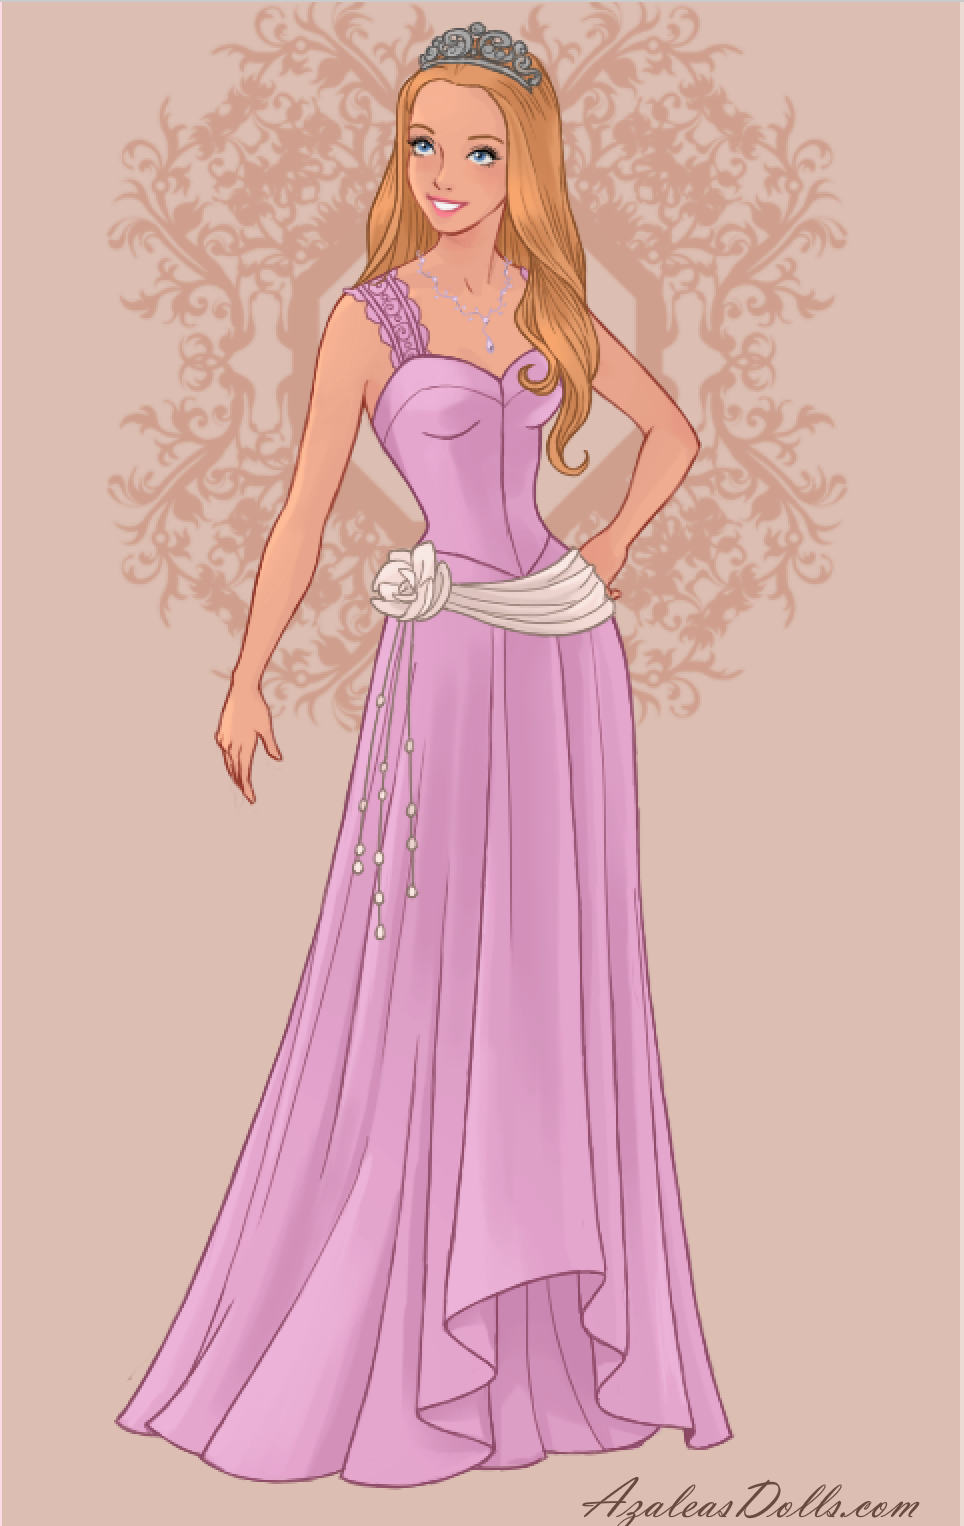 Princess Annika From Barbie And The Magic Of Pegasus In Wedding Dress Design Dress Up Game Wedding Dress Drawings Disney Princess Fashion Barbie Wedding Dress